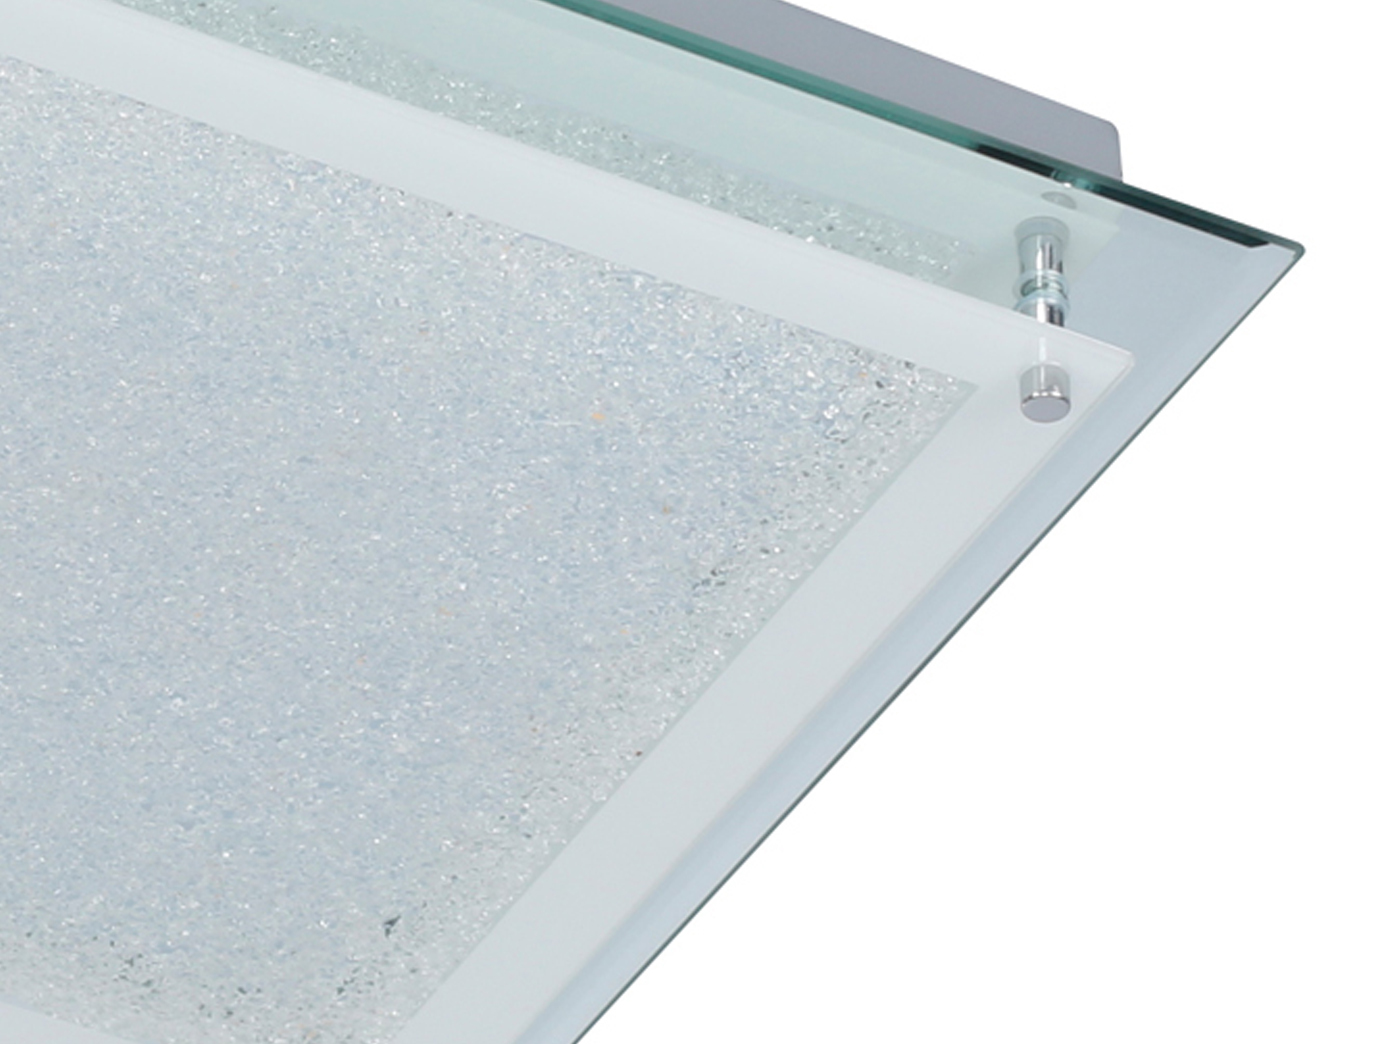 Plafoniera Led Quadrata 30x30 : Led lampada da soffitto mora cm